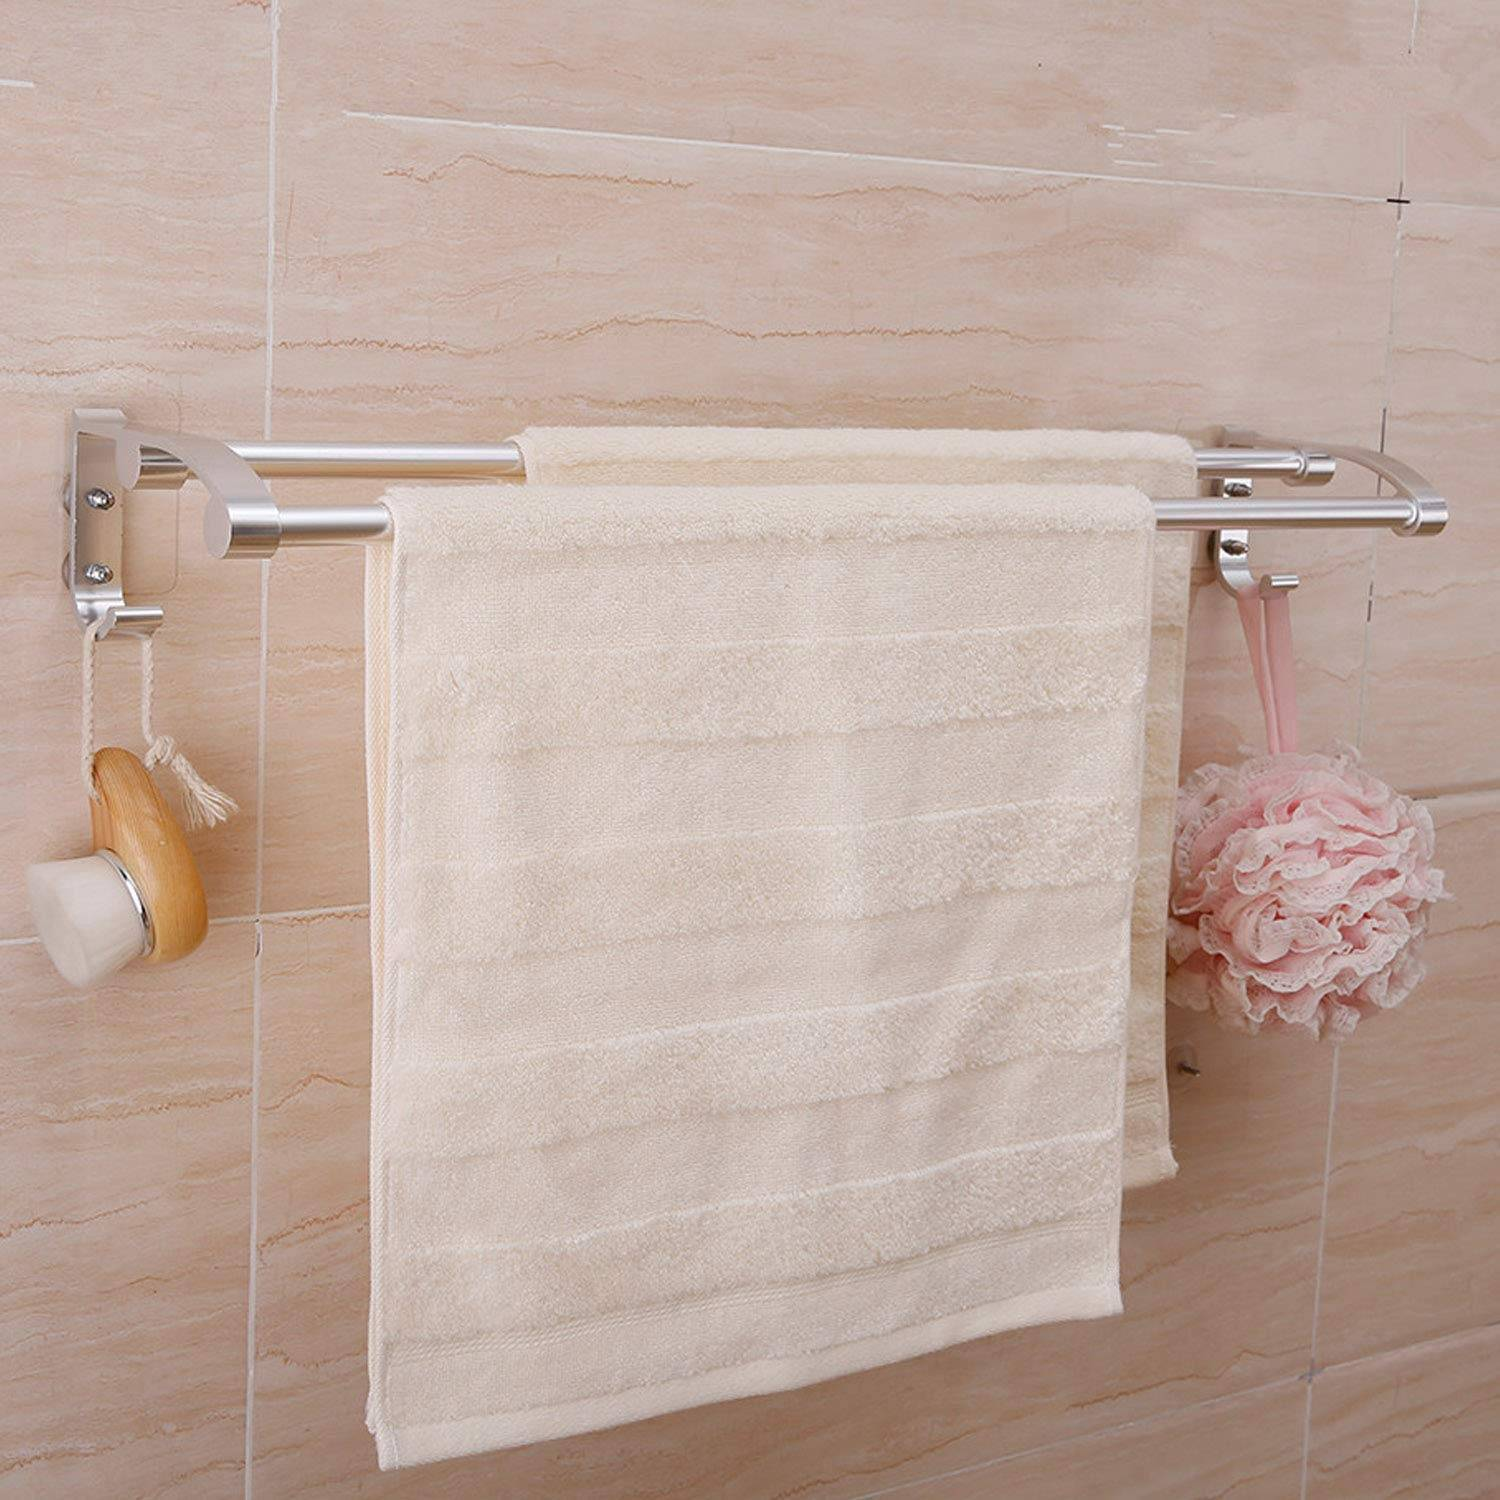 AND008019. Towel Rod Holder with 2 Hooks